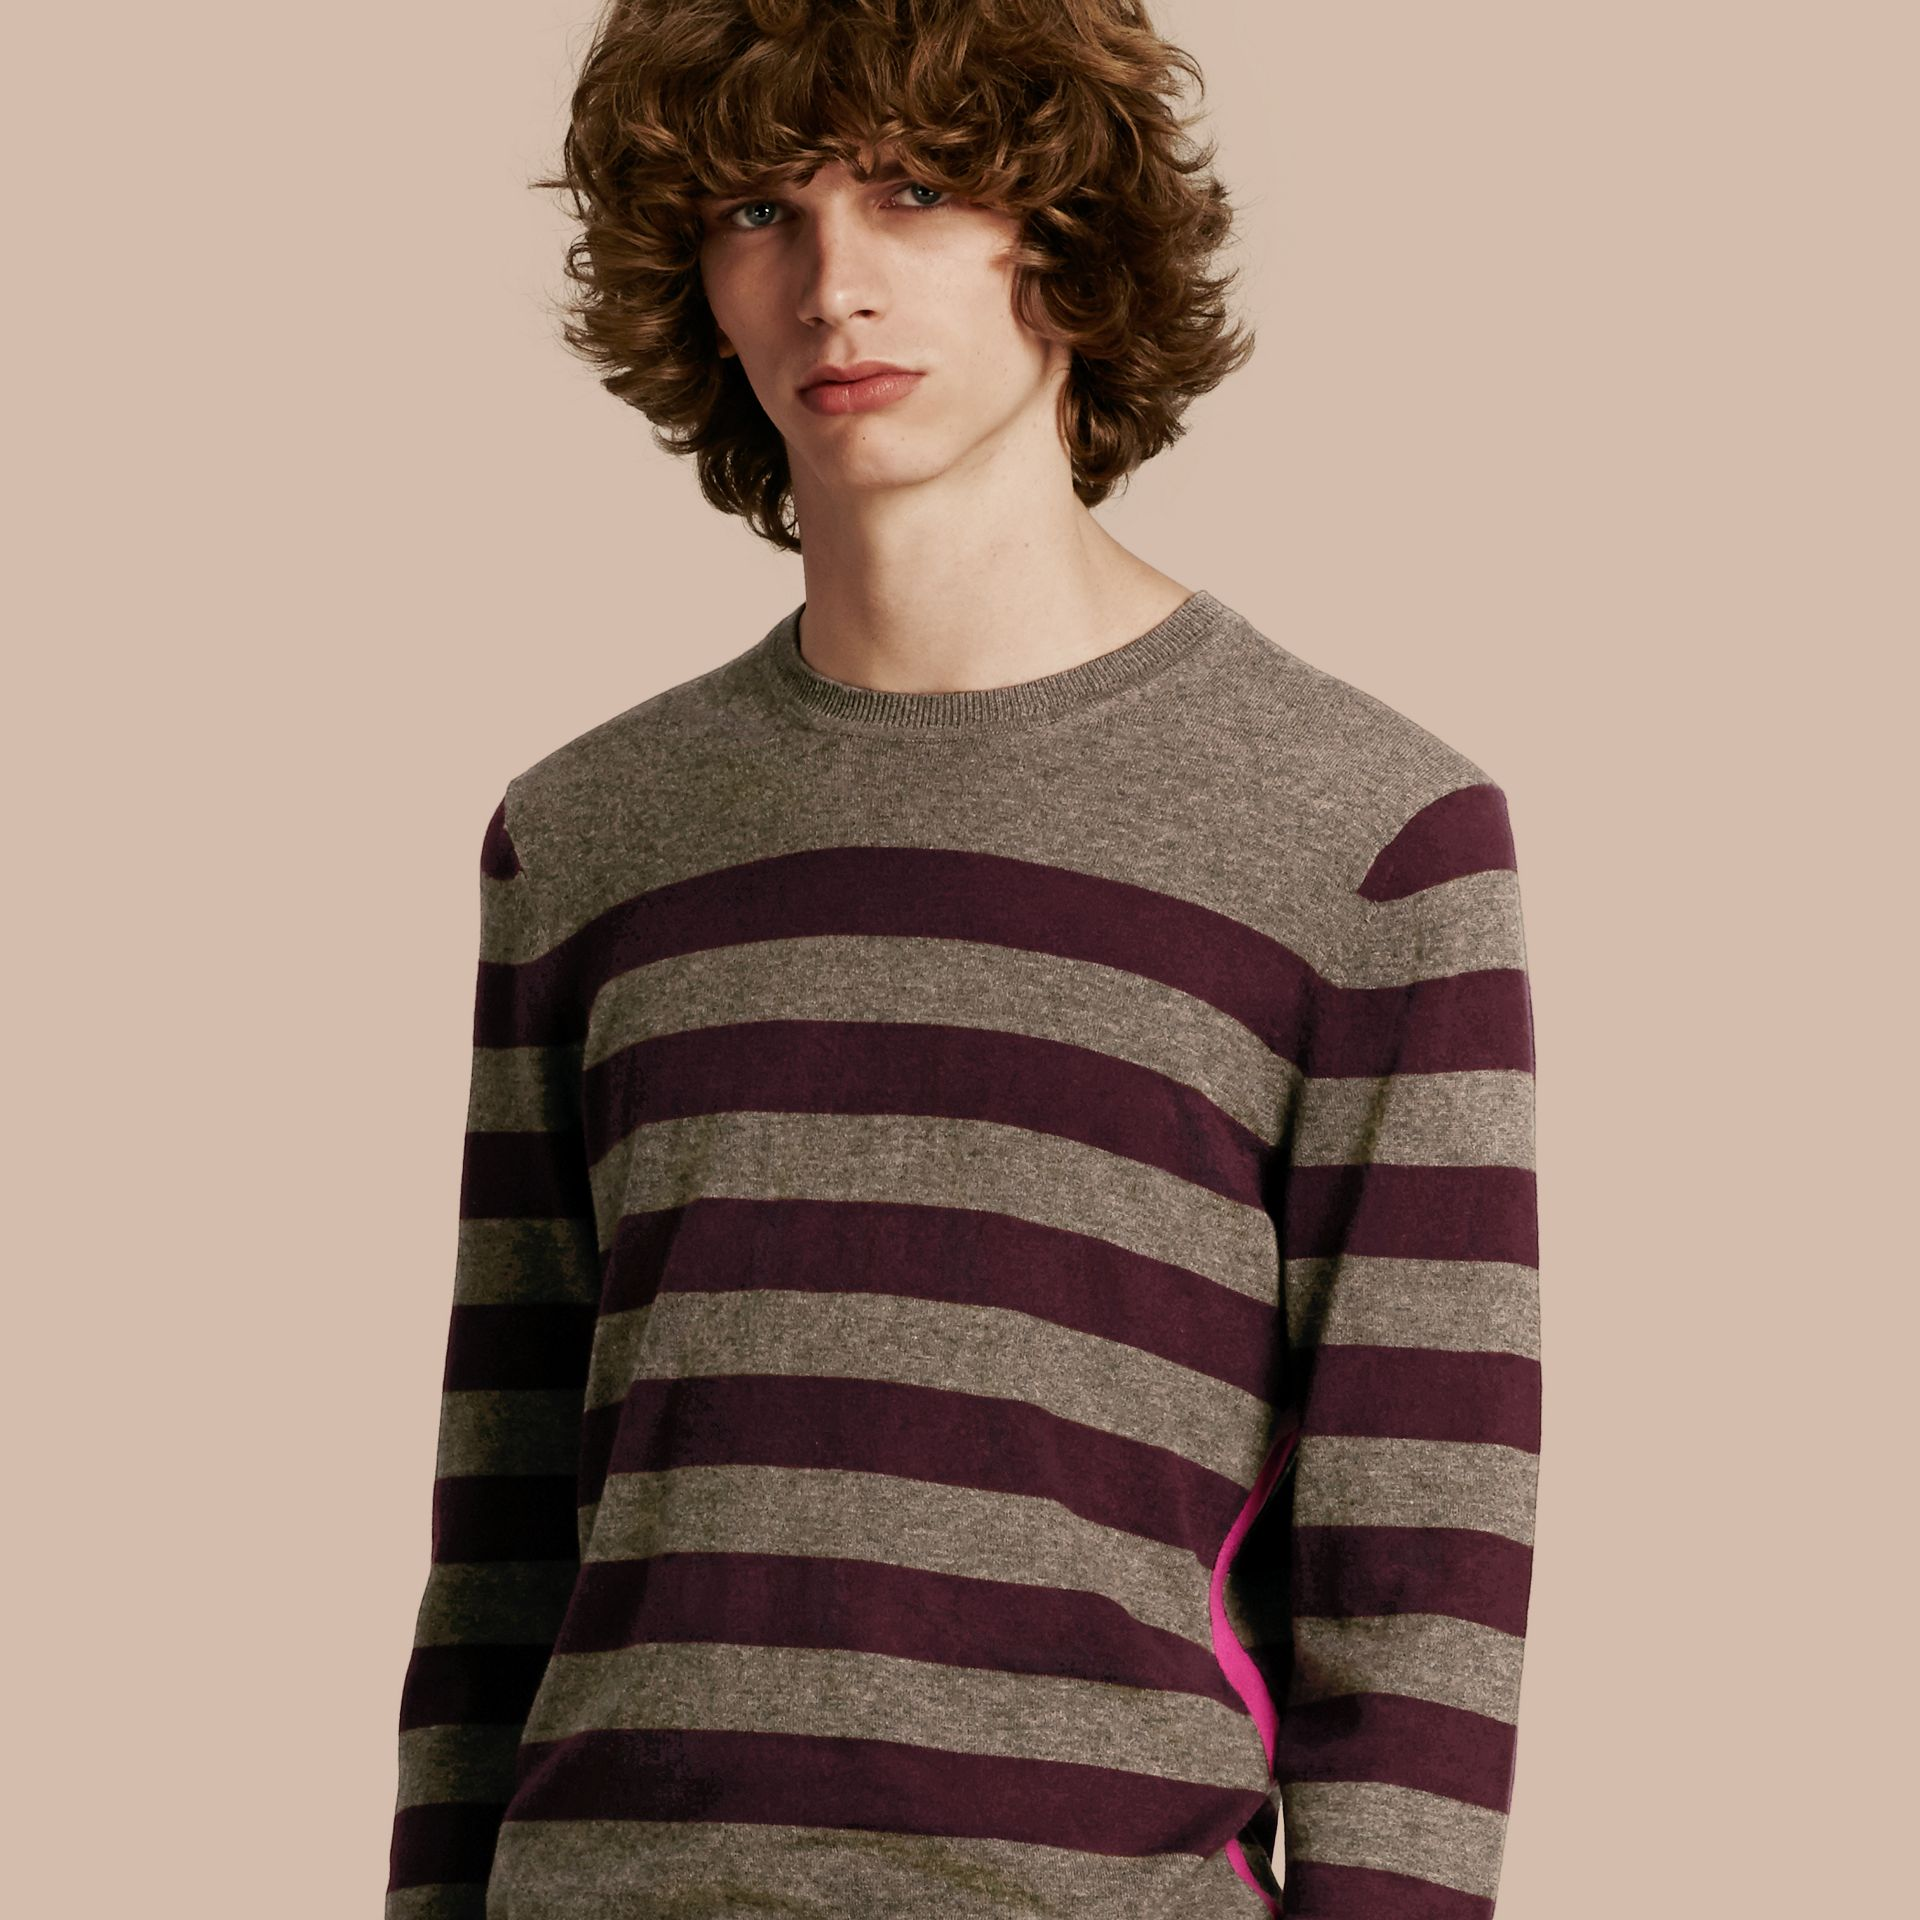 Mink grey Striped Cashmere Cotton Sweater Mink Grey - gallery image 1